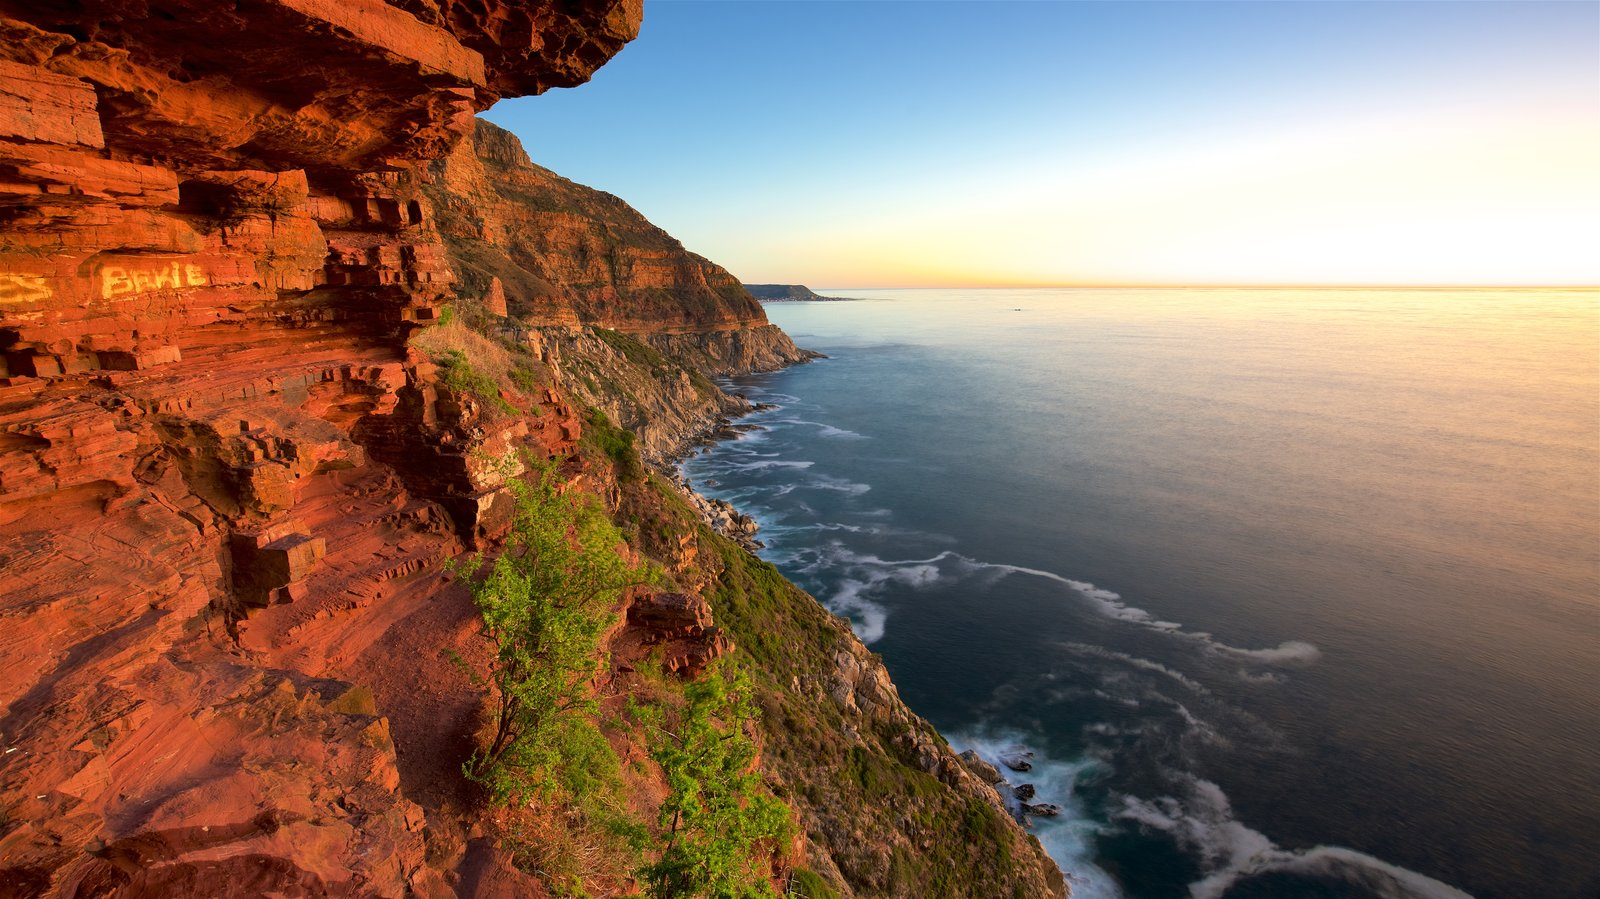 Chapmans Peak showing rocky coastline and a sunset